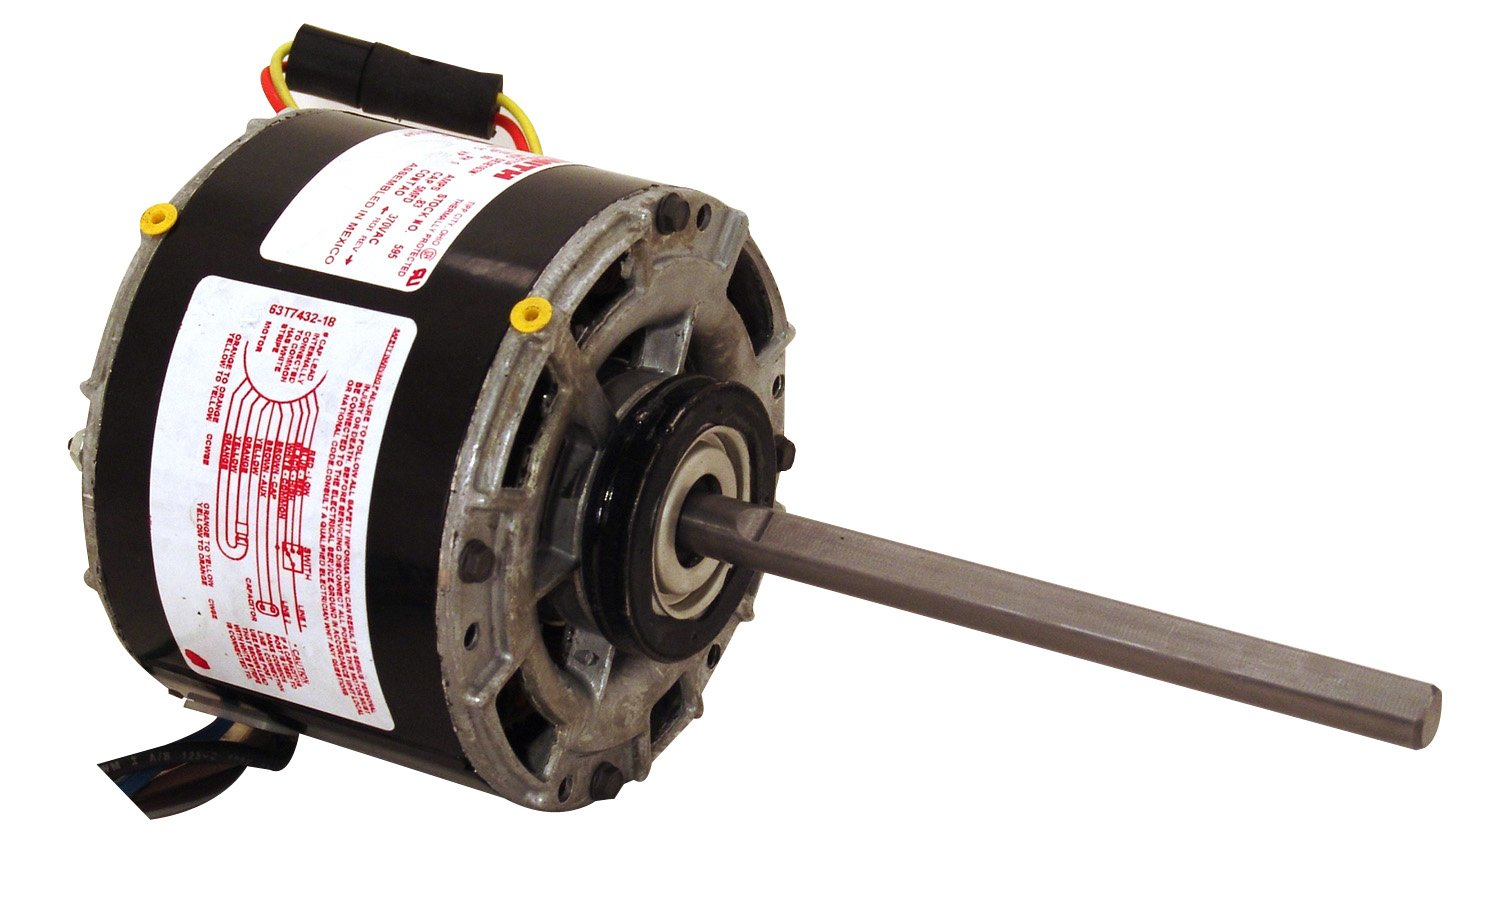 AO Smith 595  5.0-Inch Frame Diameter 1/8 HP 1075 RPM 277-Volt 0.83-Amp Sleeve Bearing Blower Motor by AO Smith